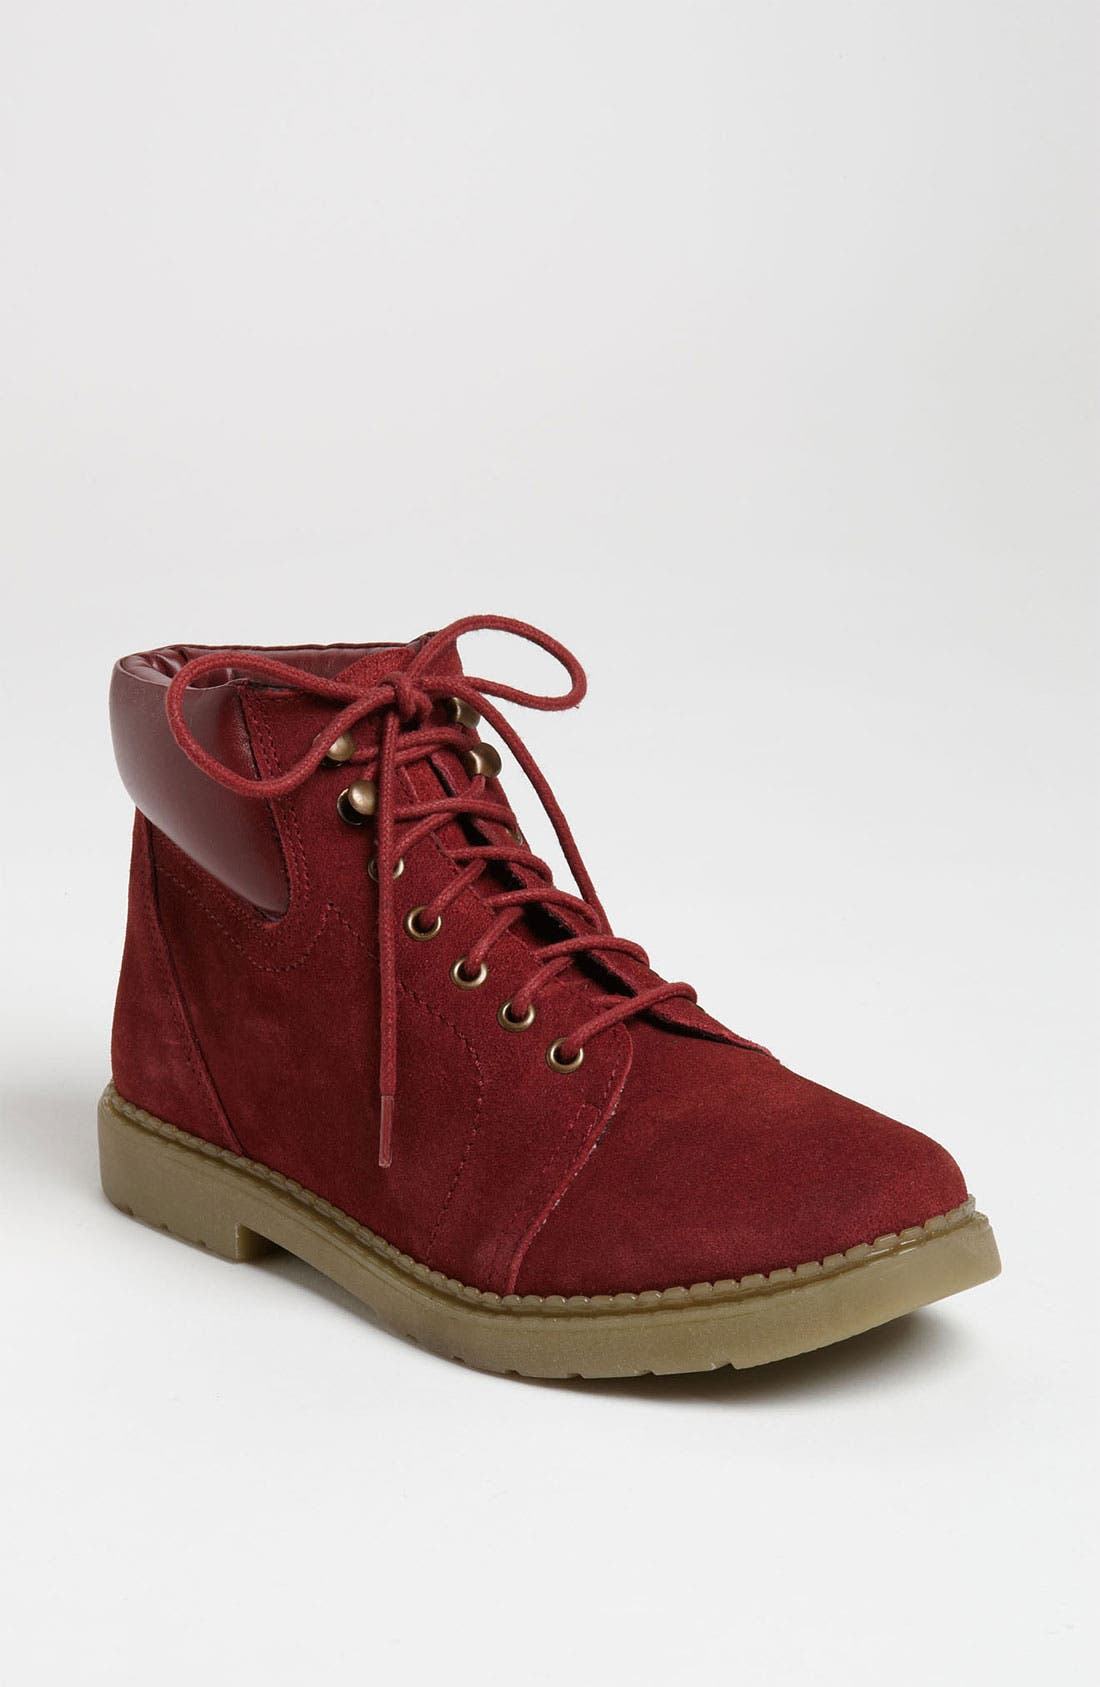 Alternate Image 1 Selected - Topshop 'Mario' Hiking Boot (Women)